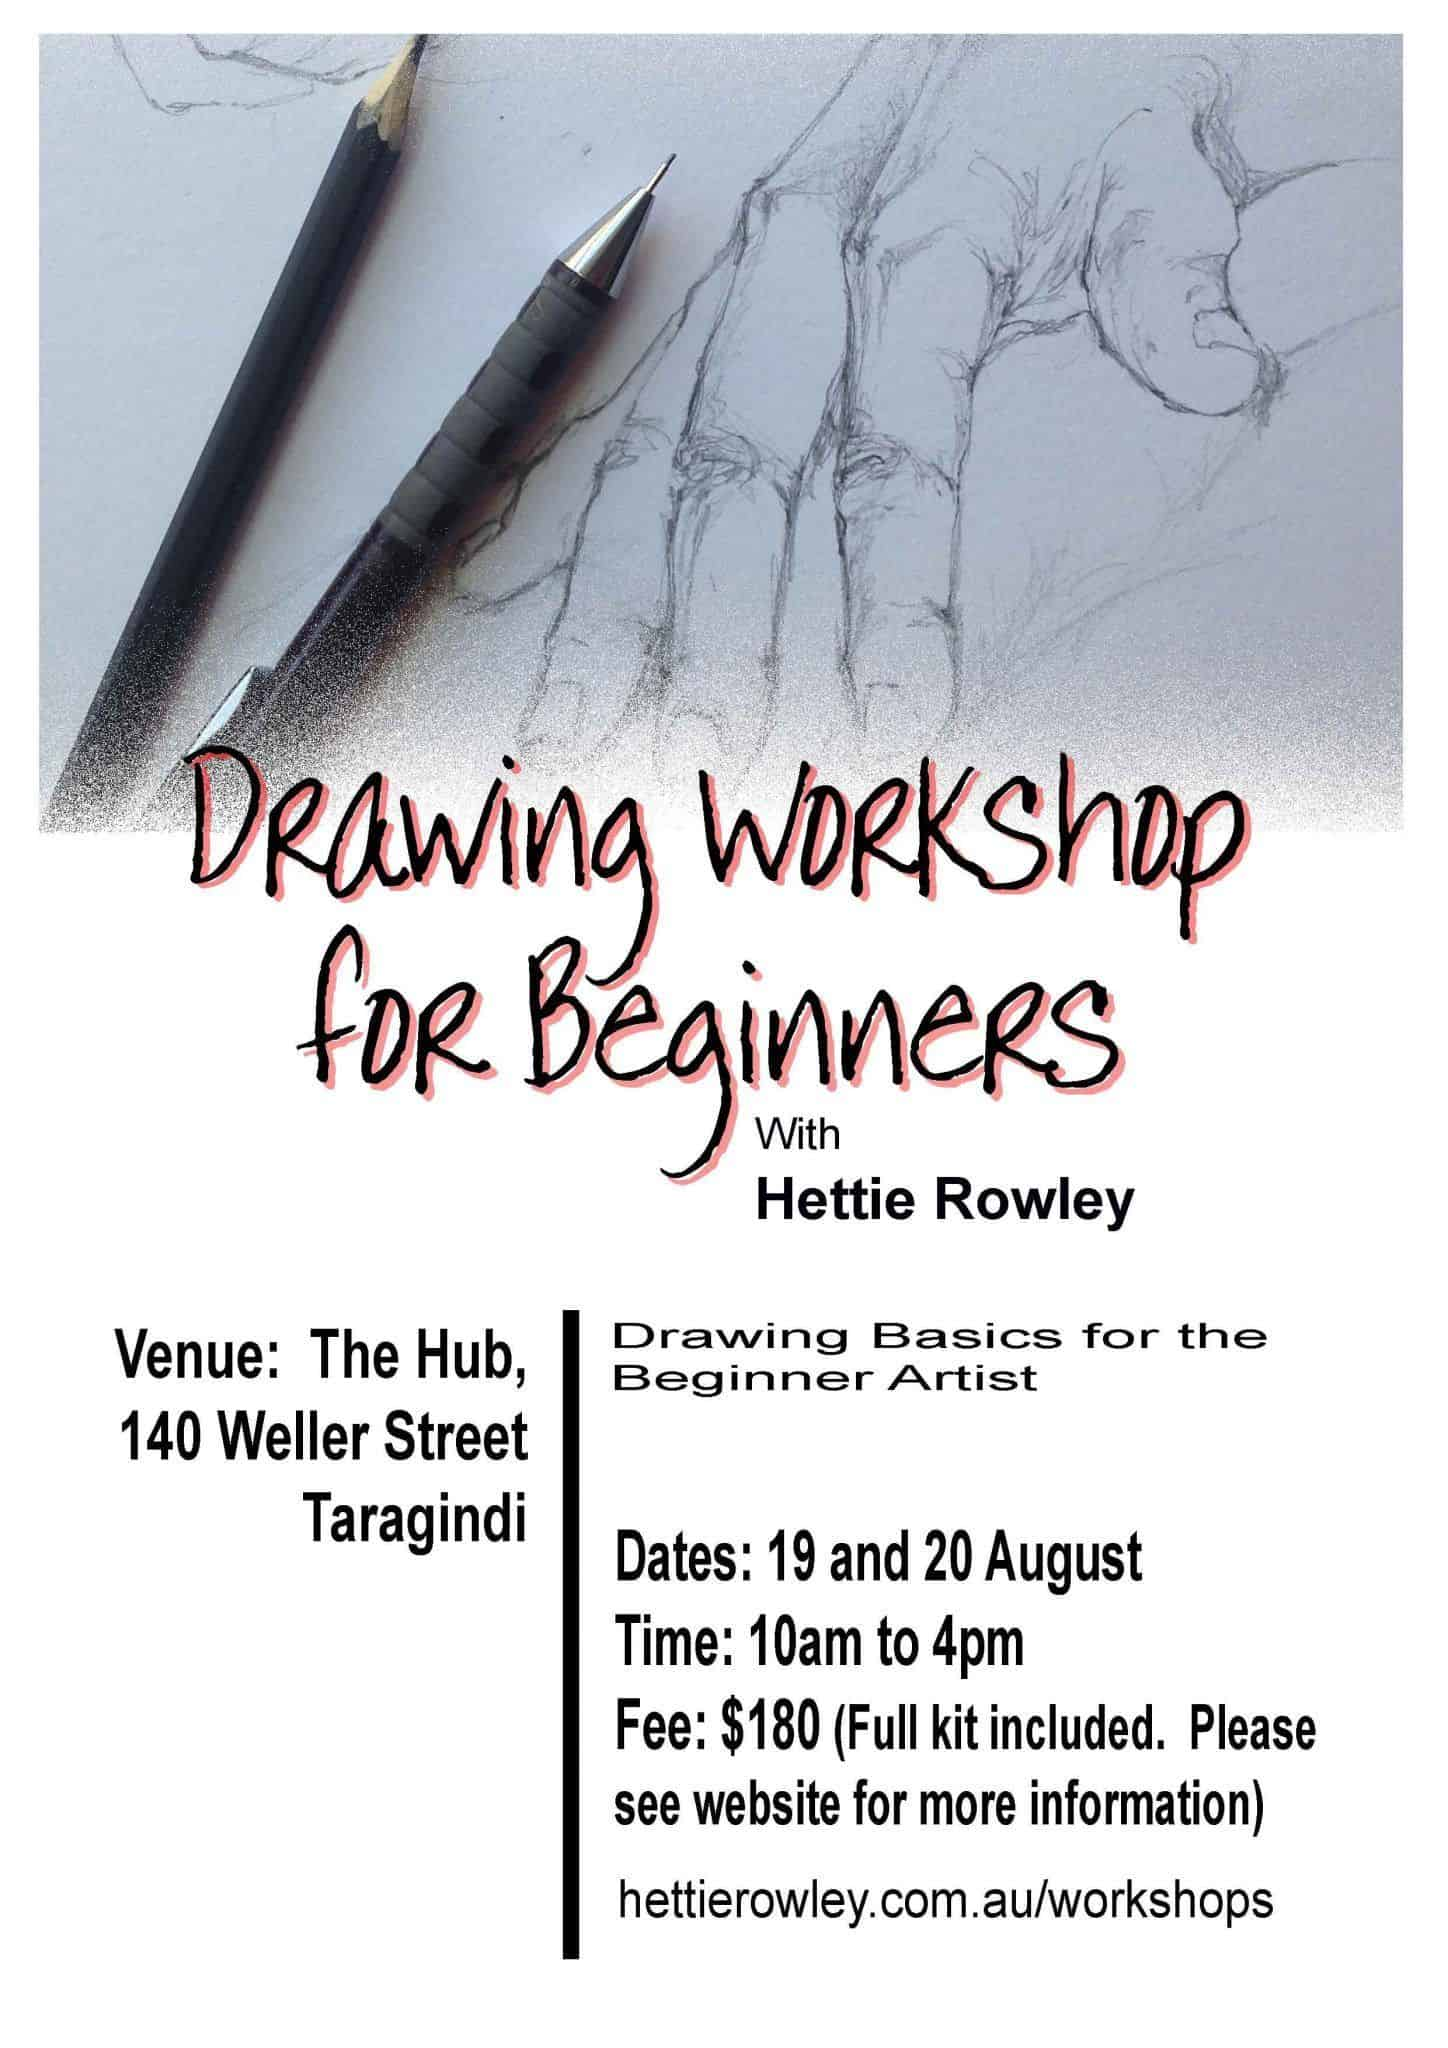 Drawing workshop for beginners